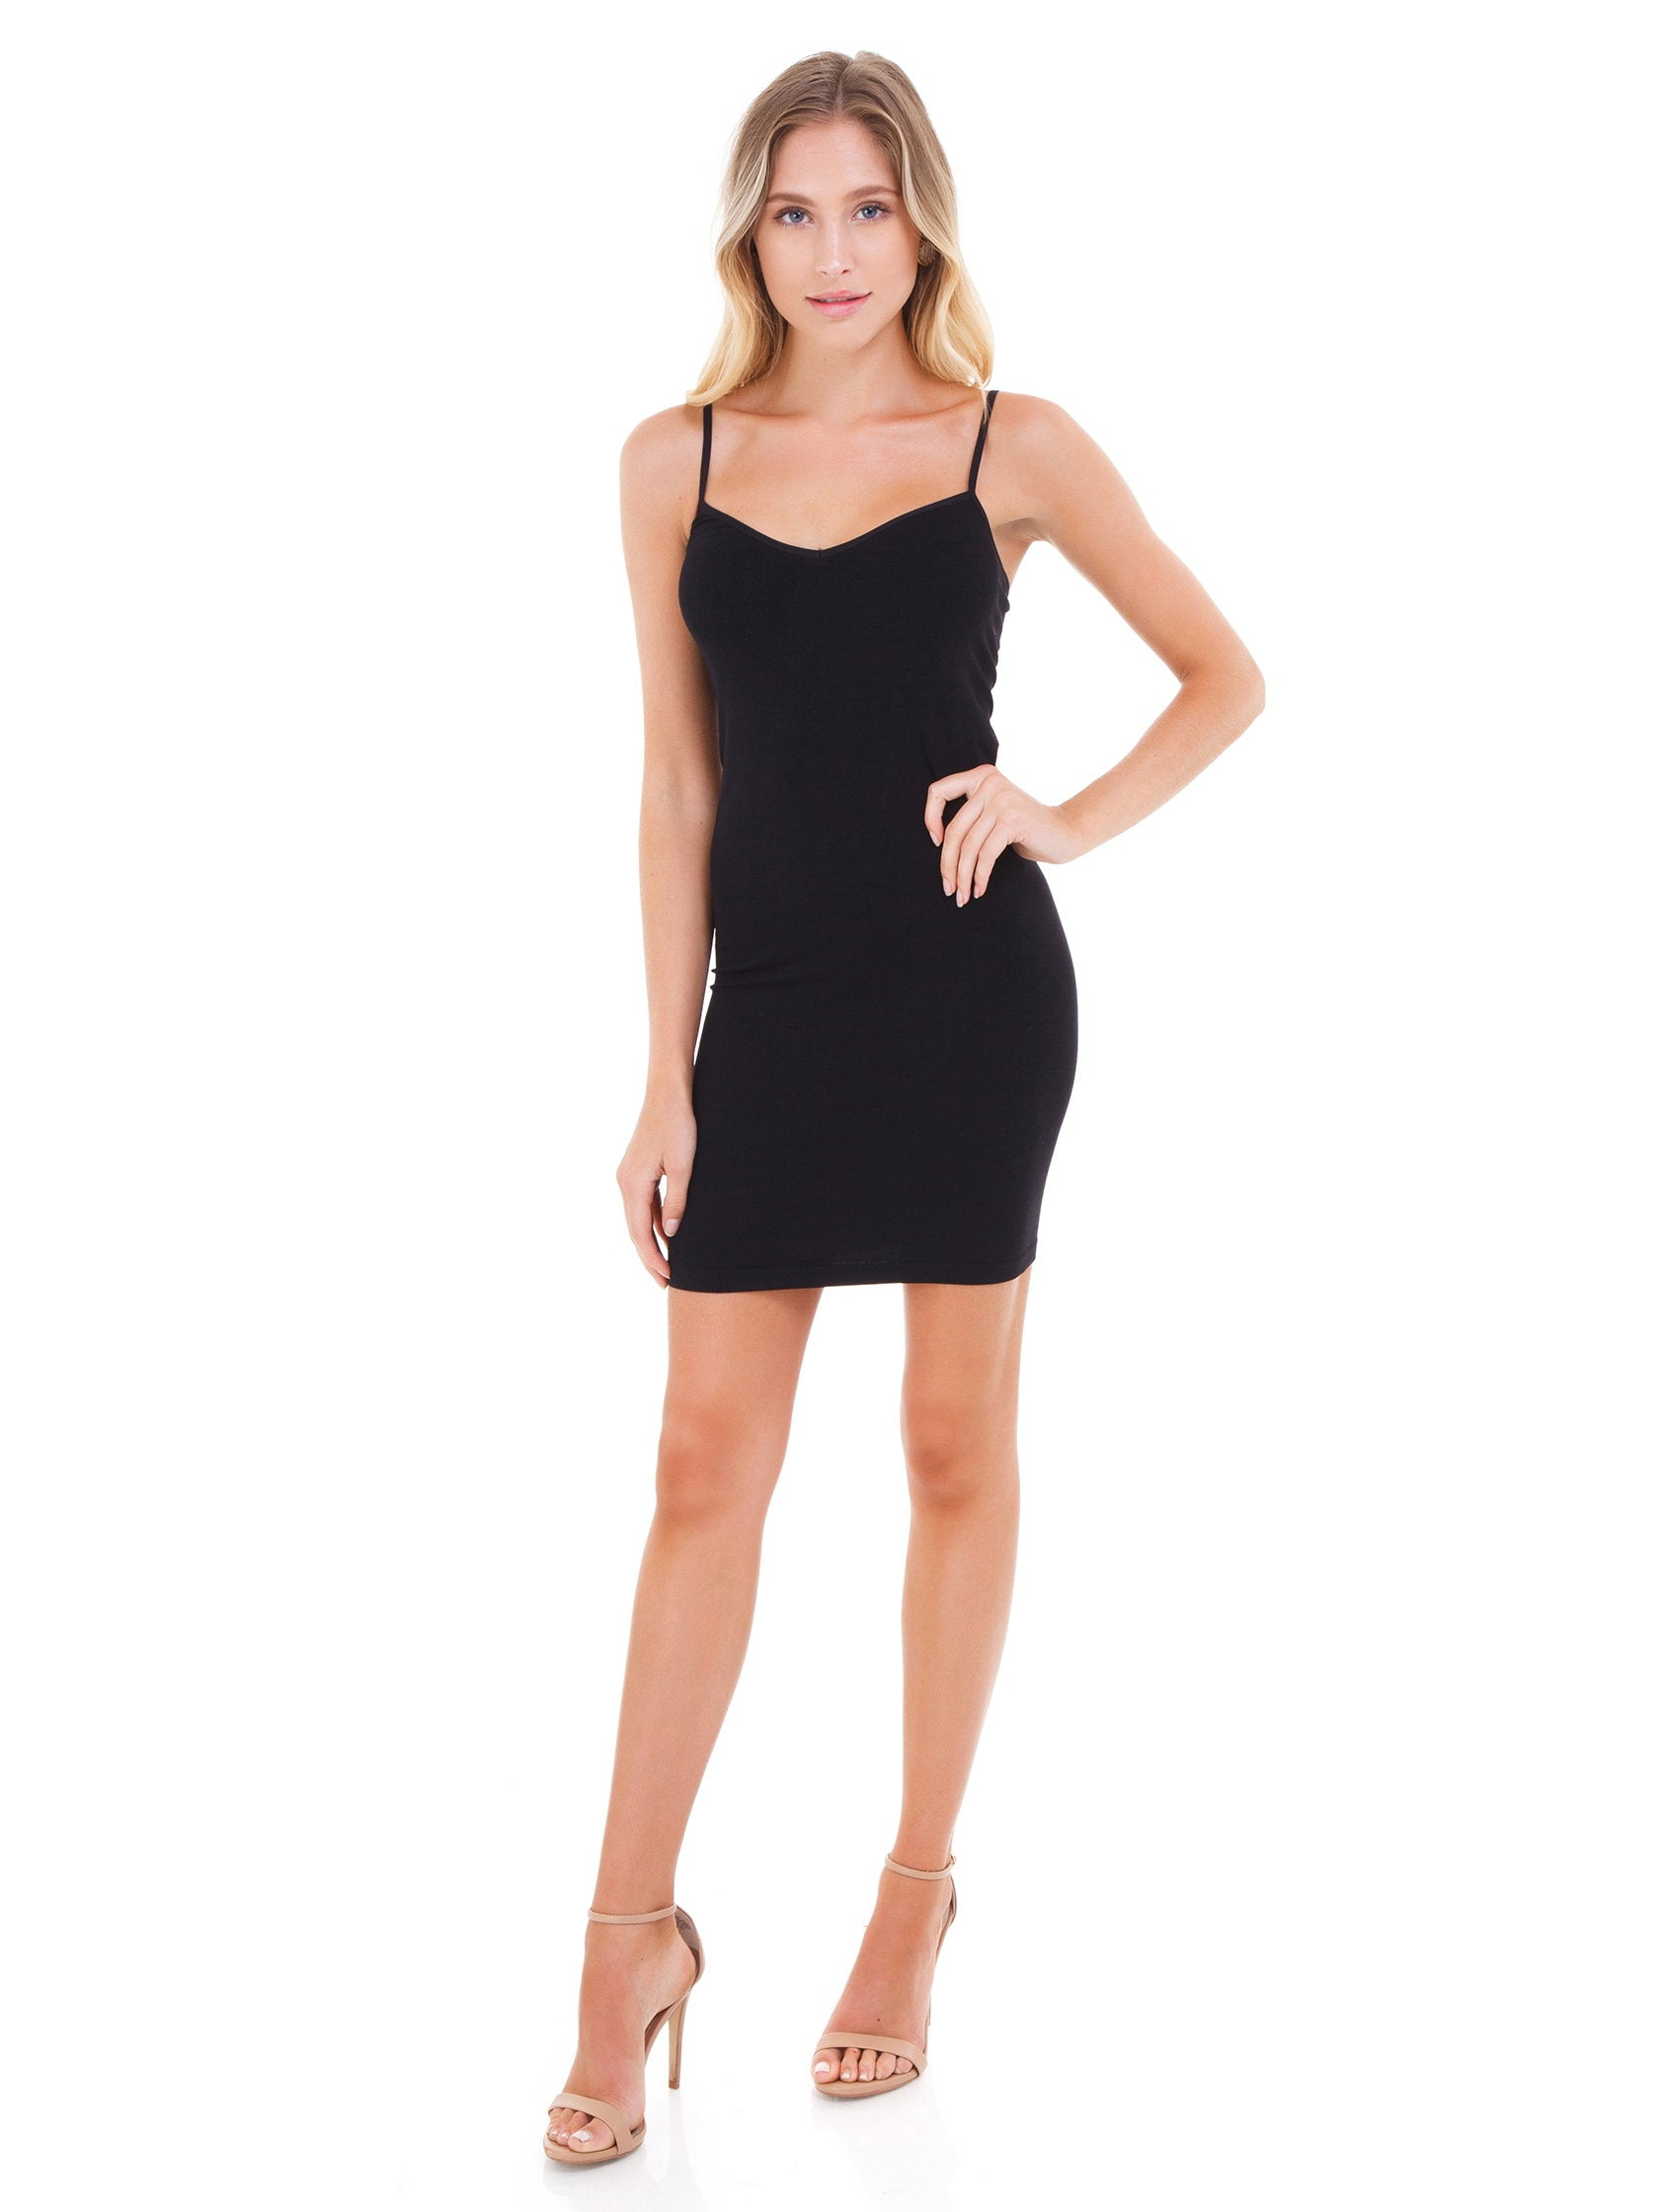 5bd7a8bacd1a1 Women outfit in a slip rental from Free People called Seamless Mini Slip